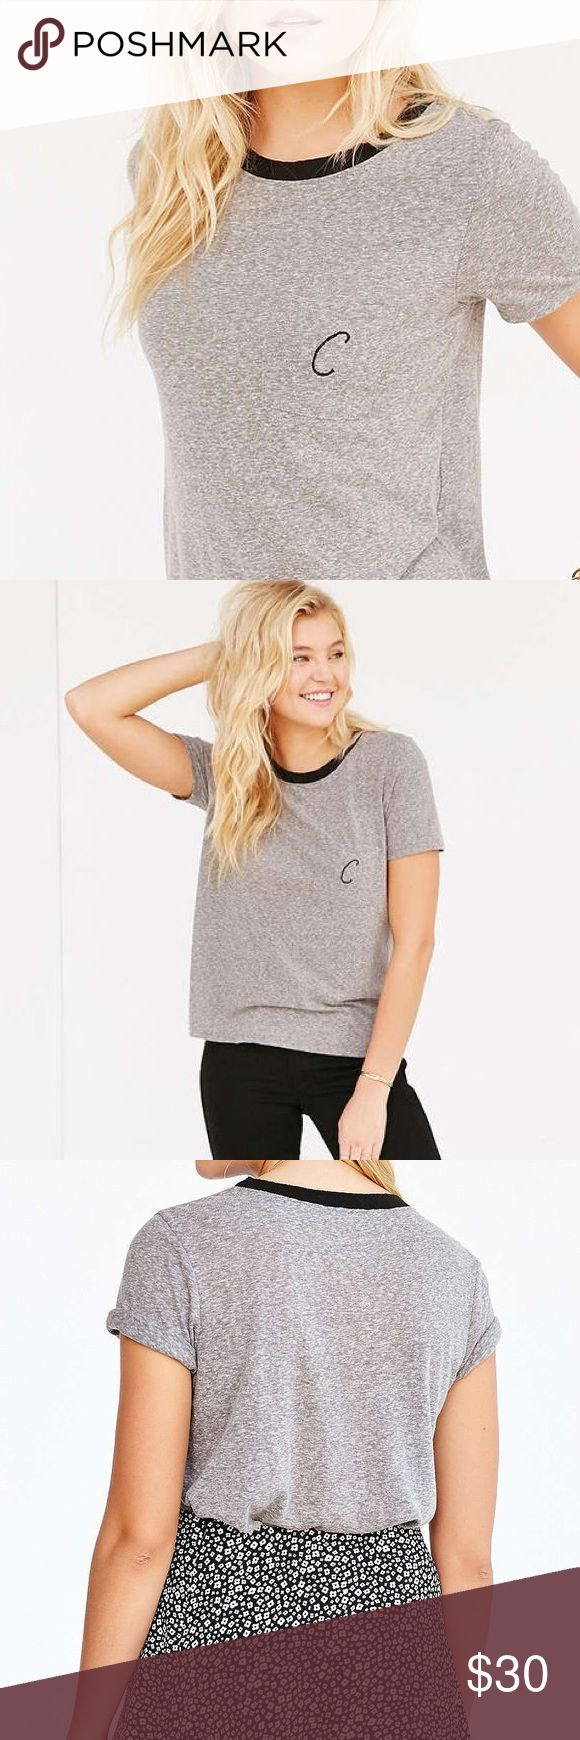 Urban Outfitters Initial Ringer Tee Only worn once, super comfortable grey tee with black lining around collar. With the initial C and from the Urban Outfitter's brand Truly Madly Deeply. Urban Outfitters Tops Tees - Short Sleeve